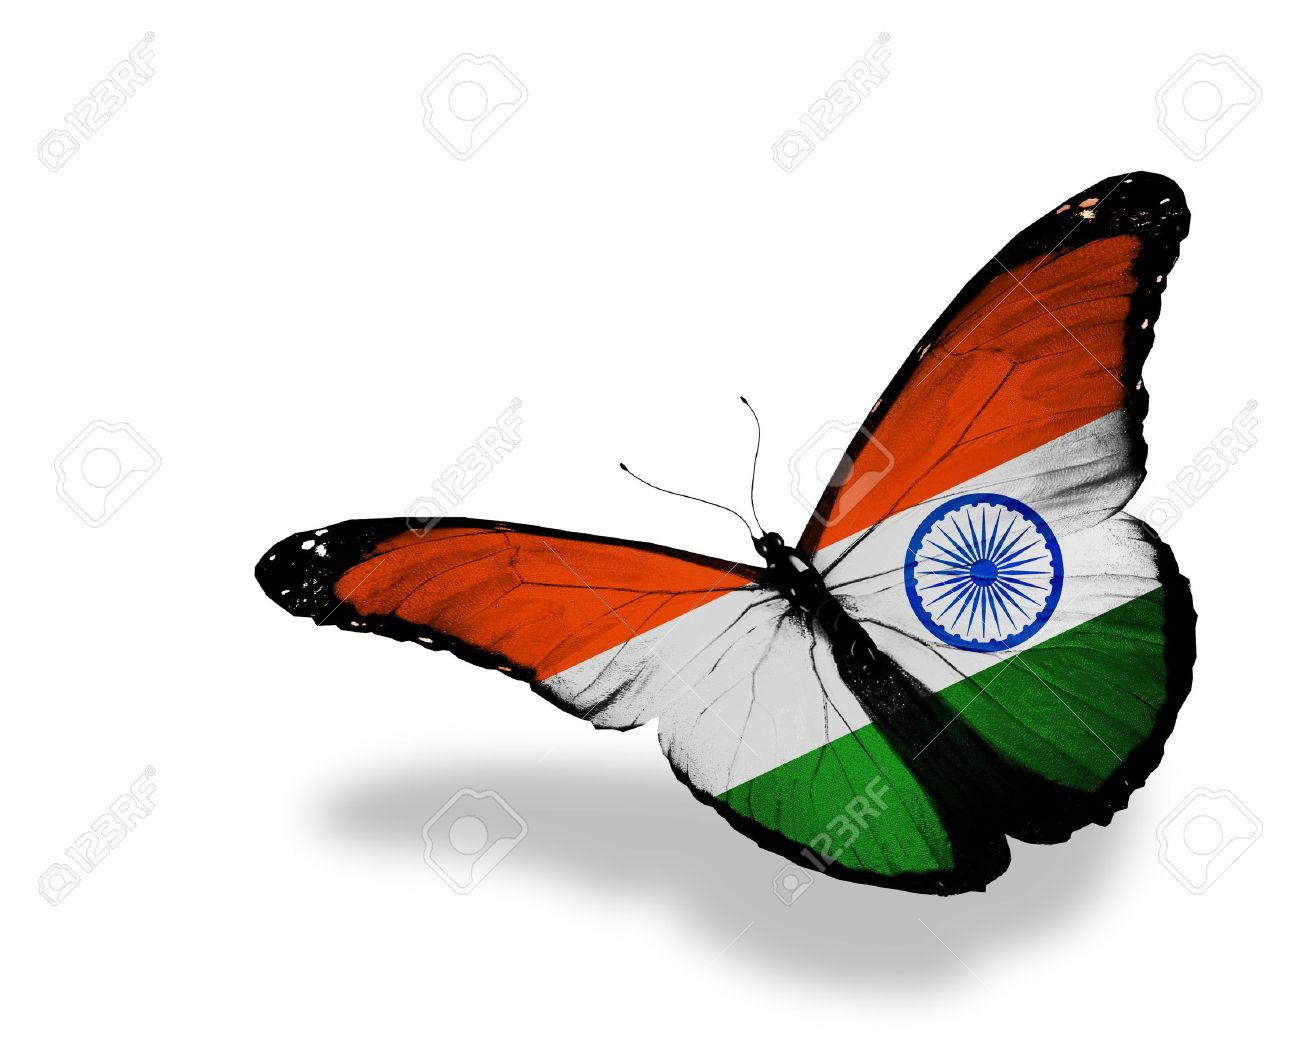 a2f4d33c7e0 Indian flag butterfly flying isolated on white background stock photo jpg  1300x1040 Flag butterfly